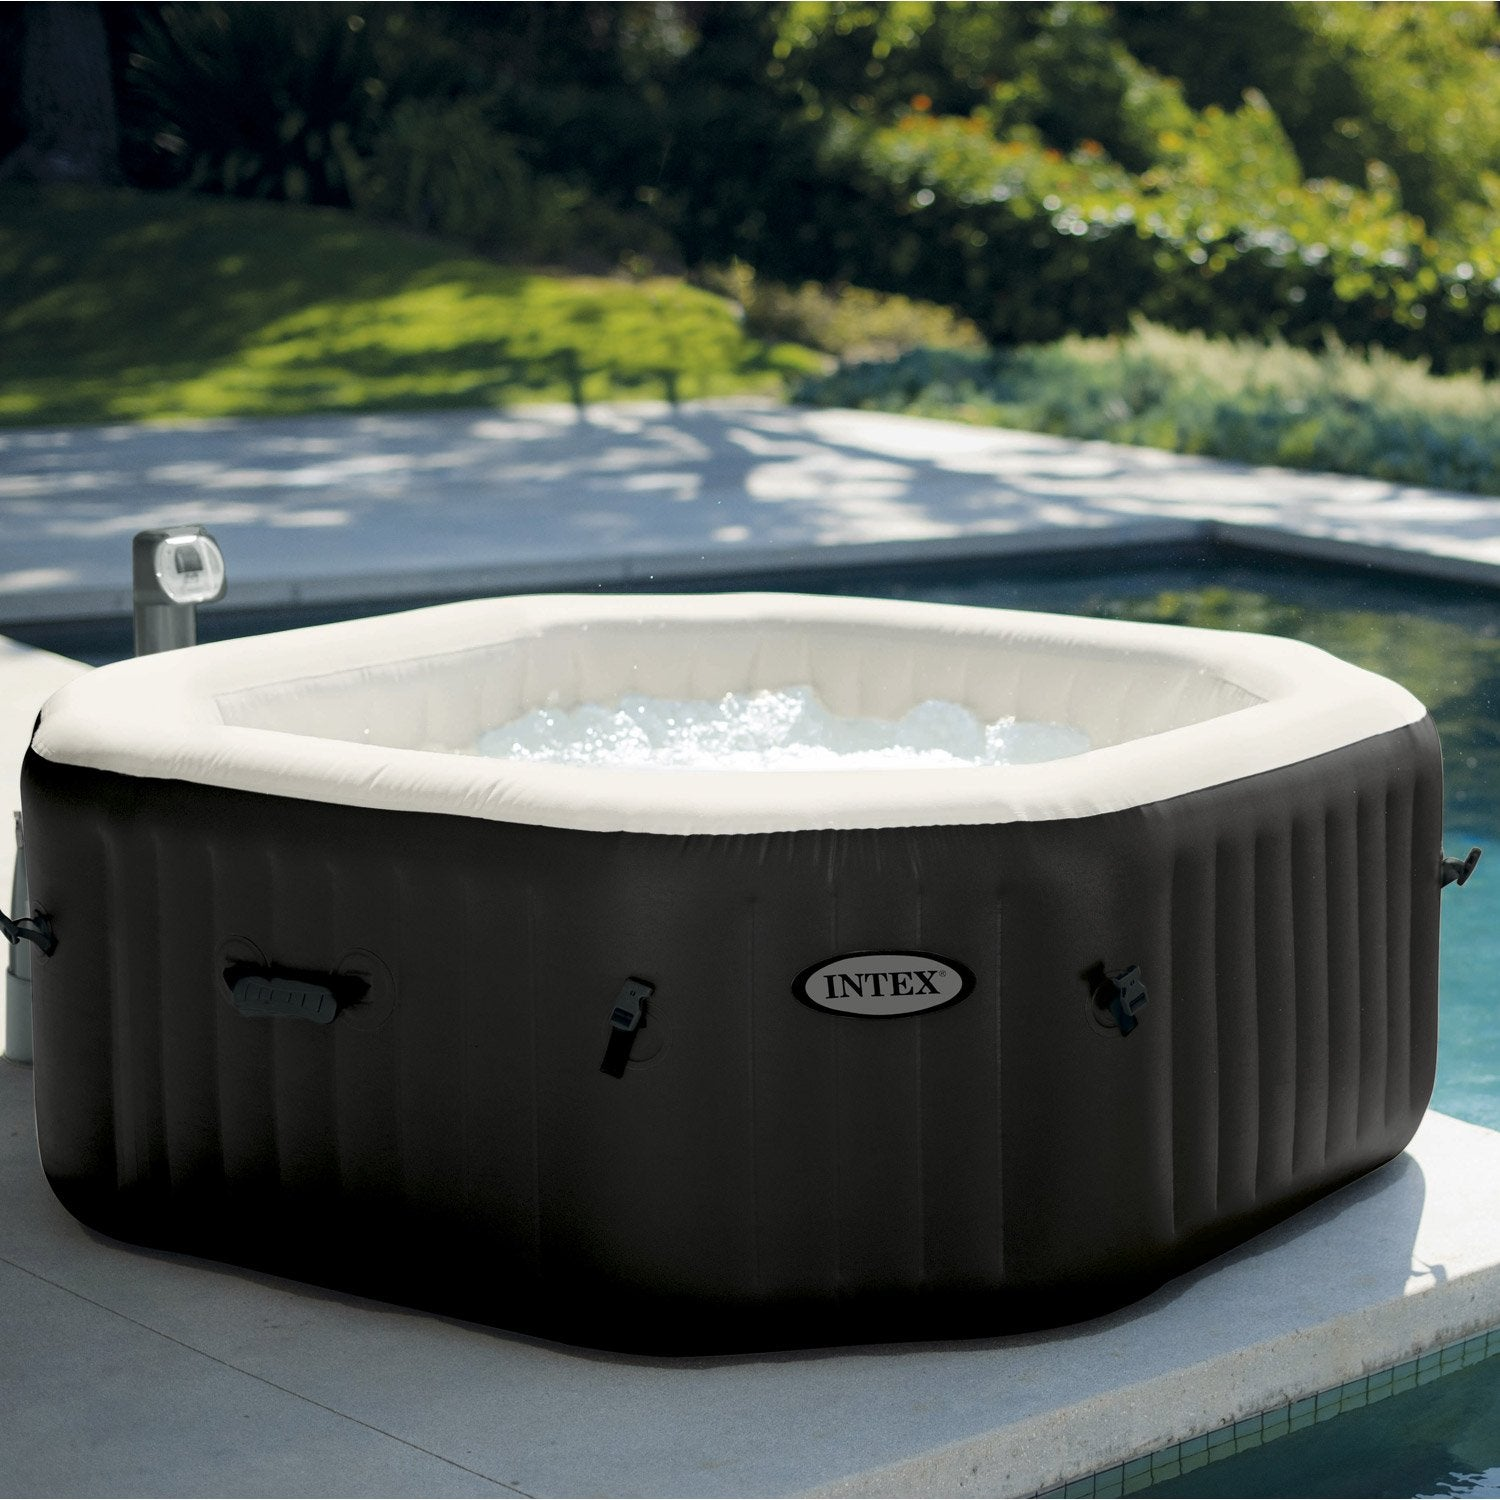 Spa gonflable octogonale intex 4 places assises leroy merlin - Piscine gonflable leroy merlin ...